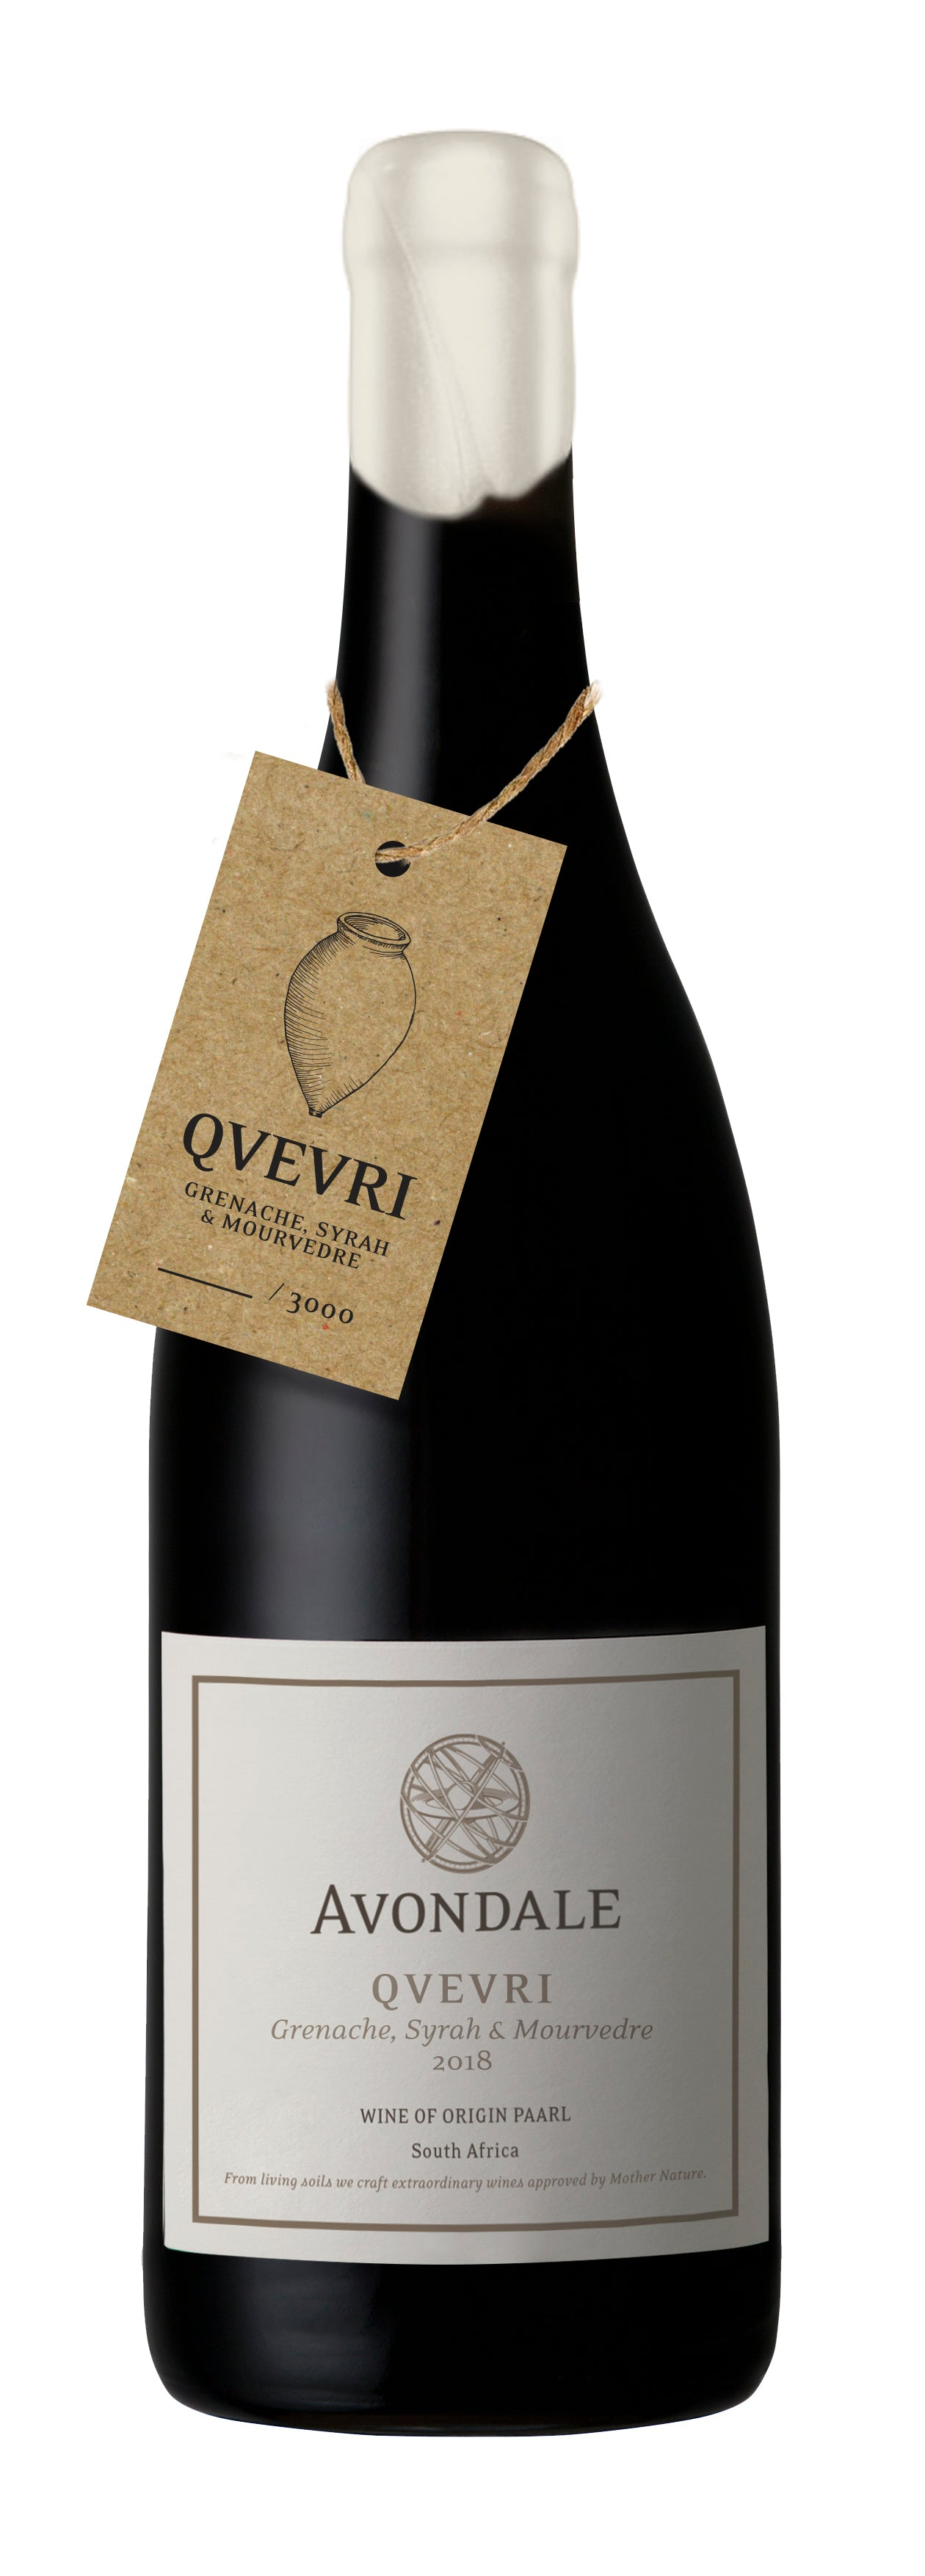 AVONDALE Qvevri Red 2018